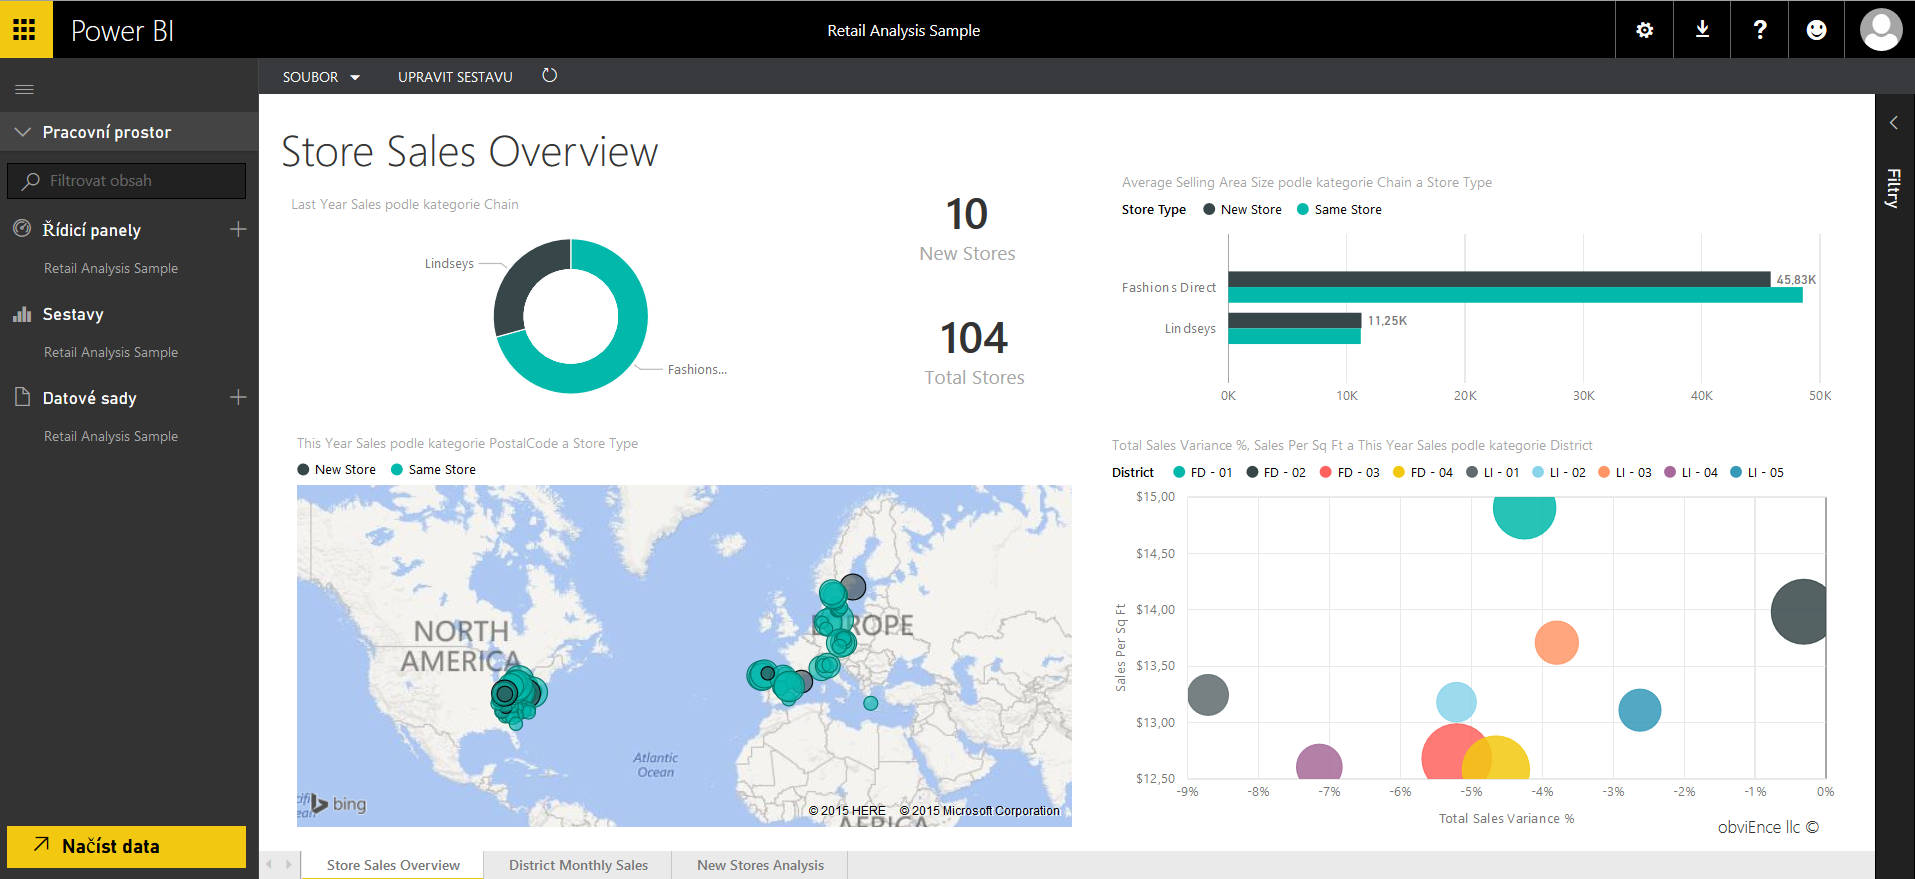 Efektivní management s Power BI